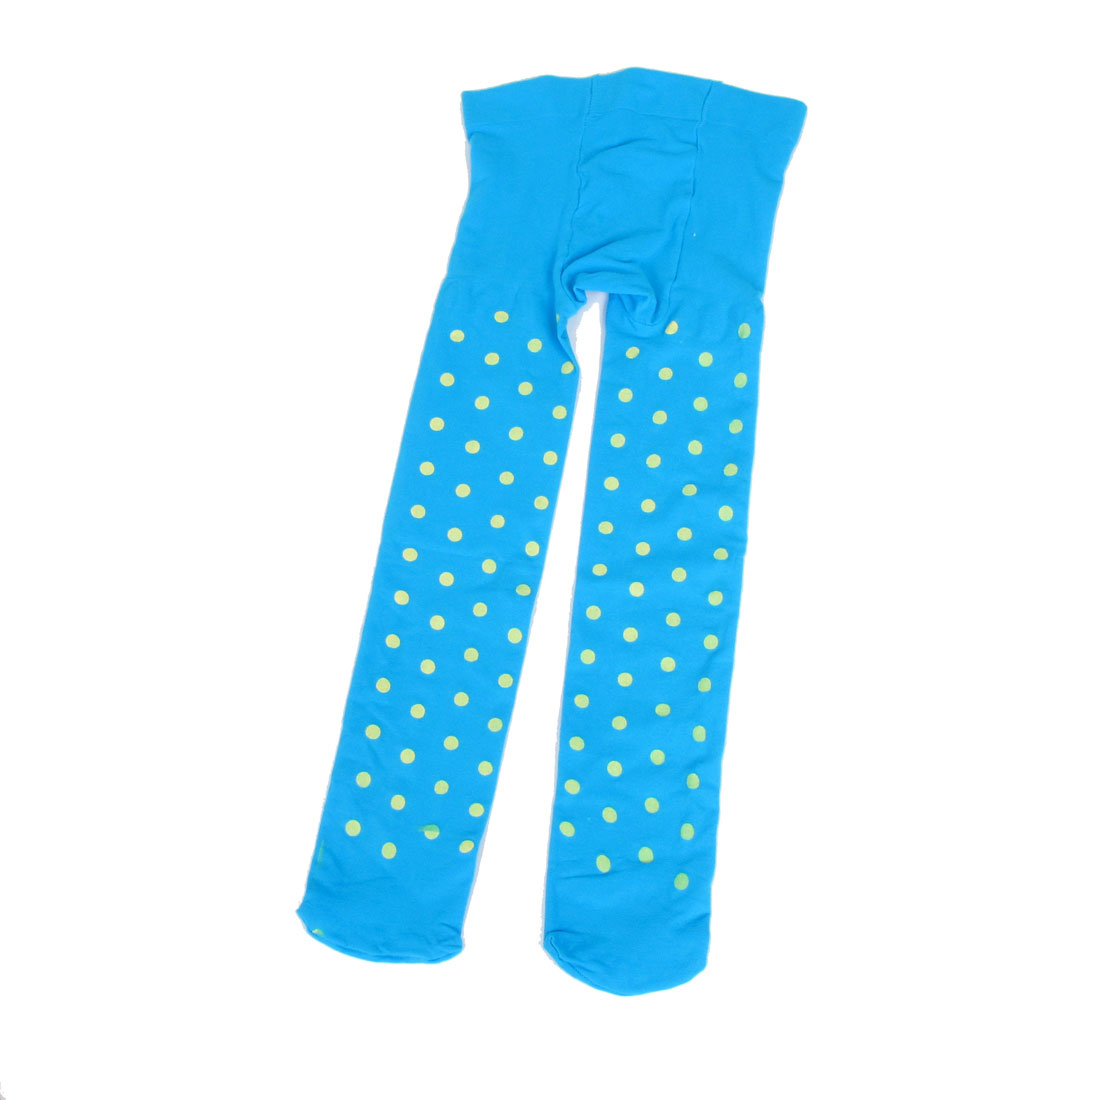 Blue Elastic Waist Yellow Dots Pattern Footed Leggings Tights M for 4-7T Girls